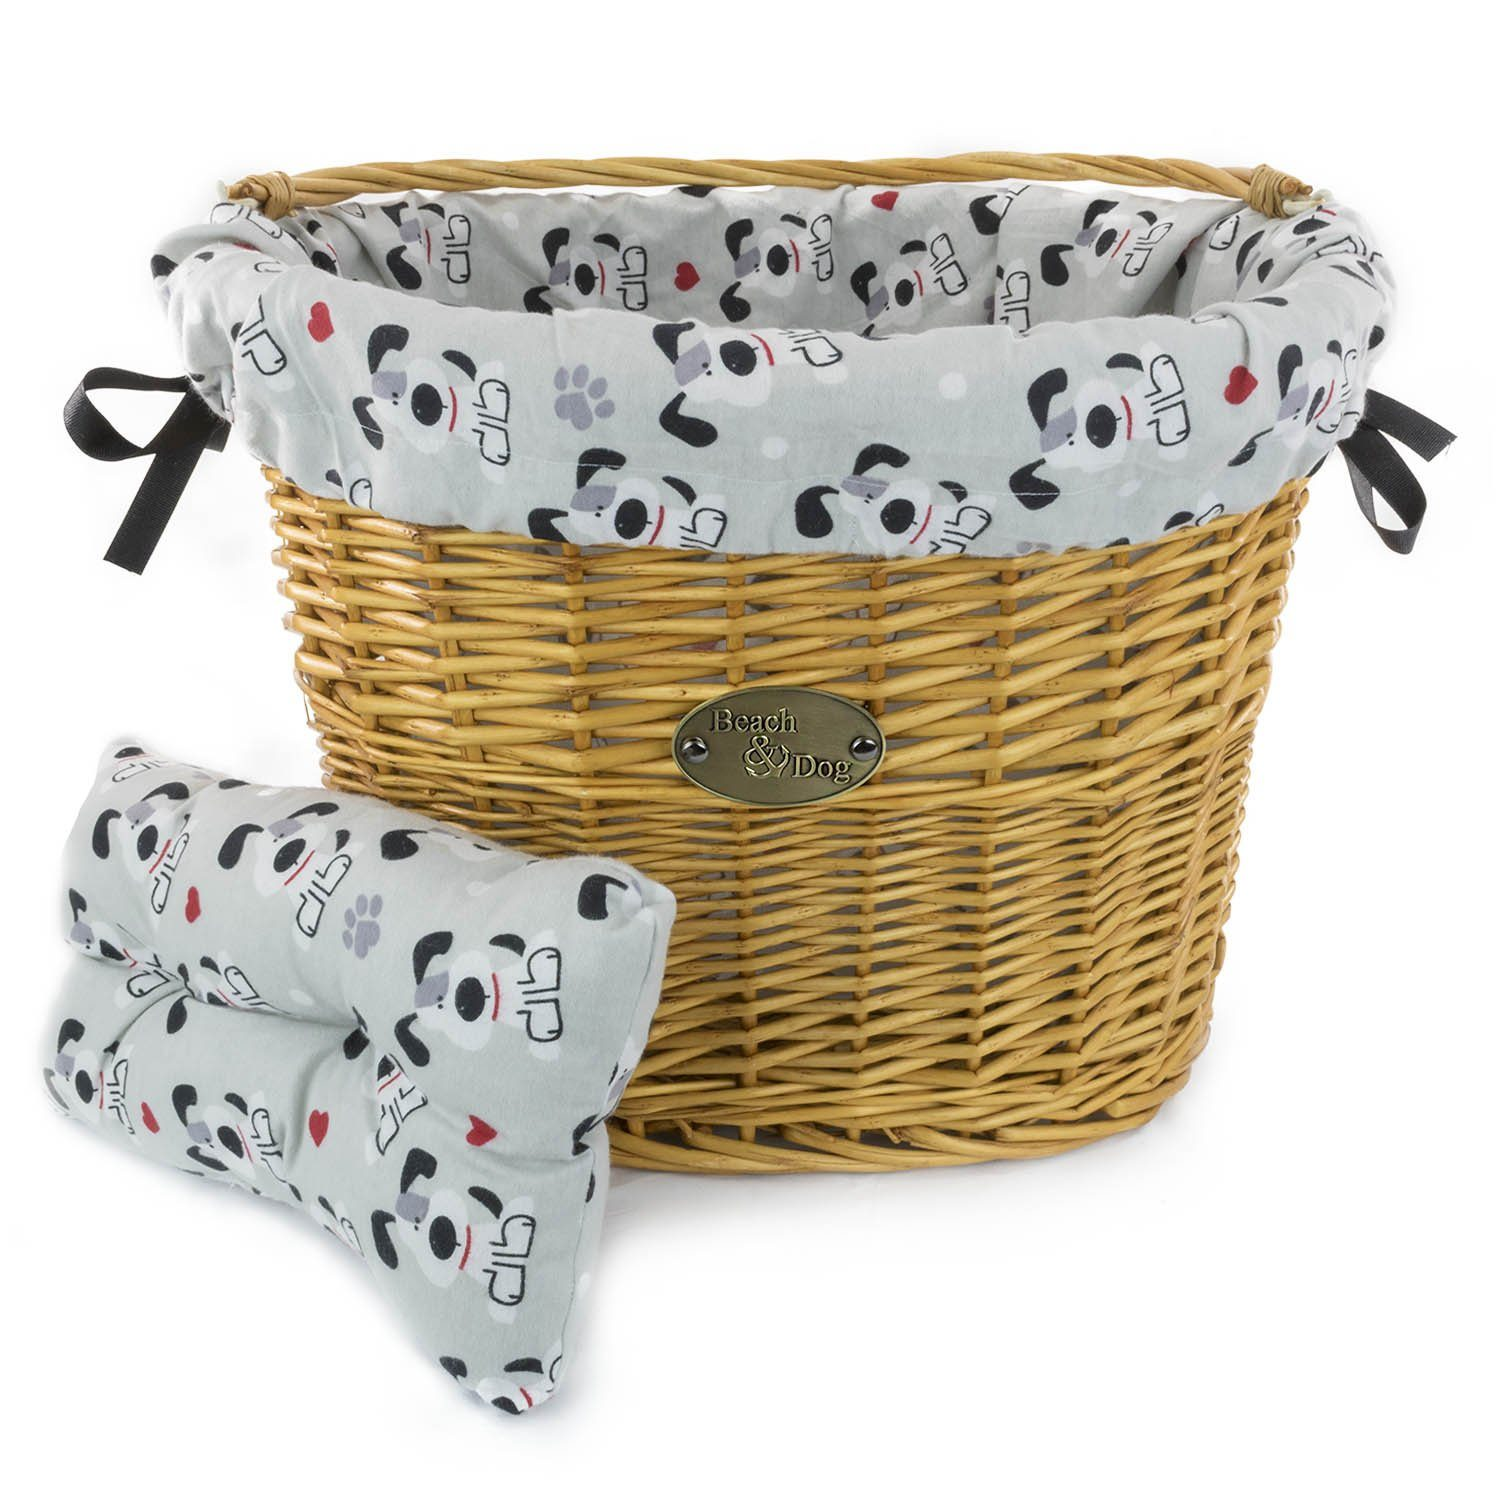 Dogs, Hearts, and Paws Basket Liner - Beach & Dog Co.